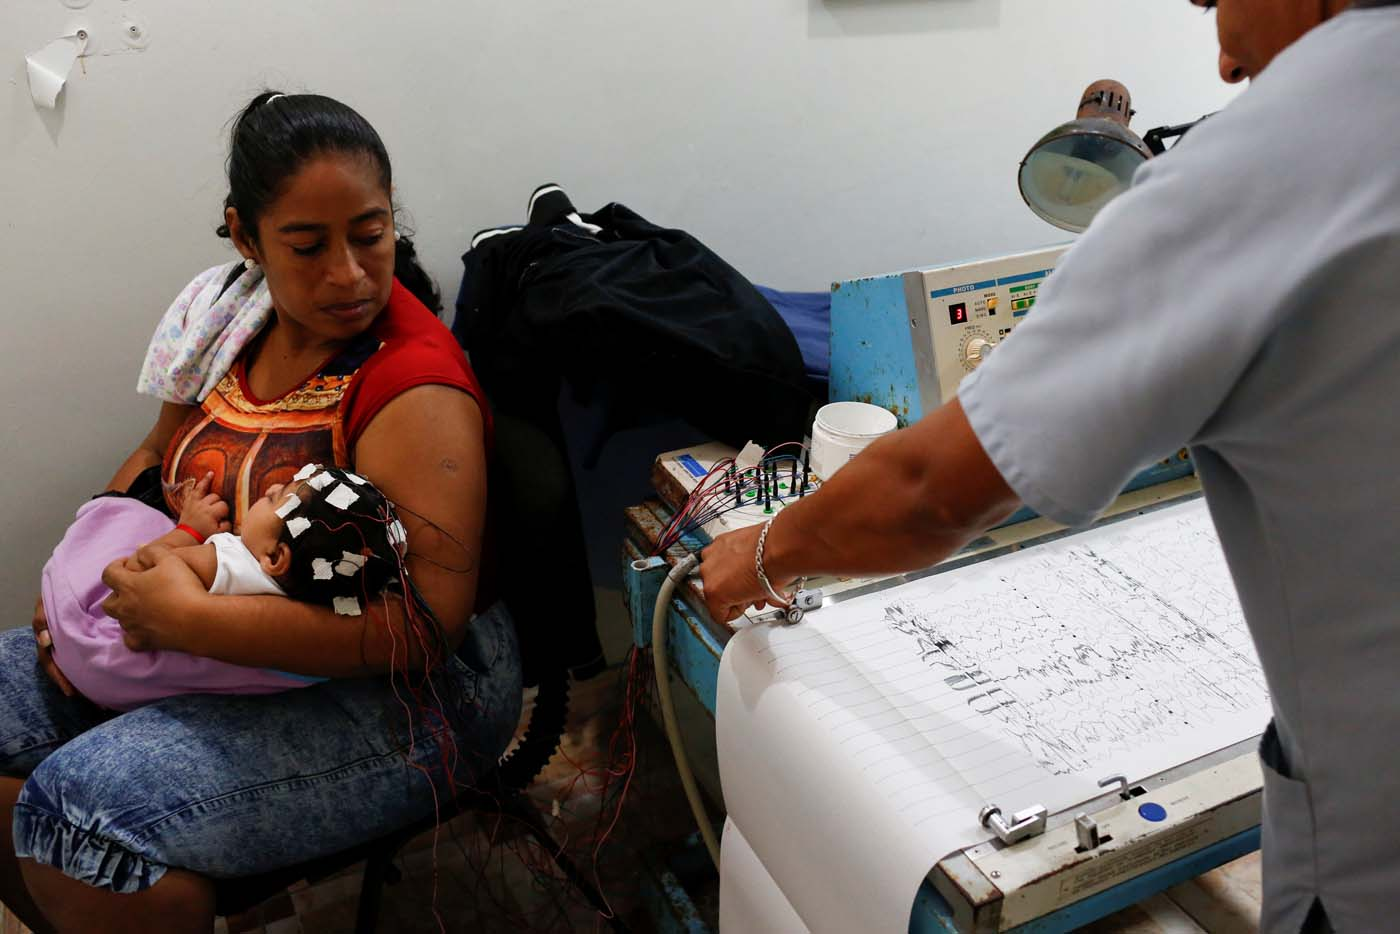 "Iberis Vargas (L), holds her 7-month-old daughter, Geovelis Ramos, a neurological patient being treated with anticonvulsants, during an electroencephalogram in a clinic in La Guaira, Venezuela February 4, 2017. REUTERS/Carlos Garcia Rawlins    SEARCH ""EPILEPSY CARACAS"" FOR THIS STORY. SEARCH ""WIDER IMAGE"" FOR ALL STORIES."